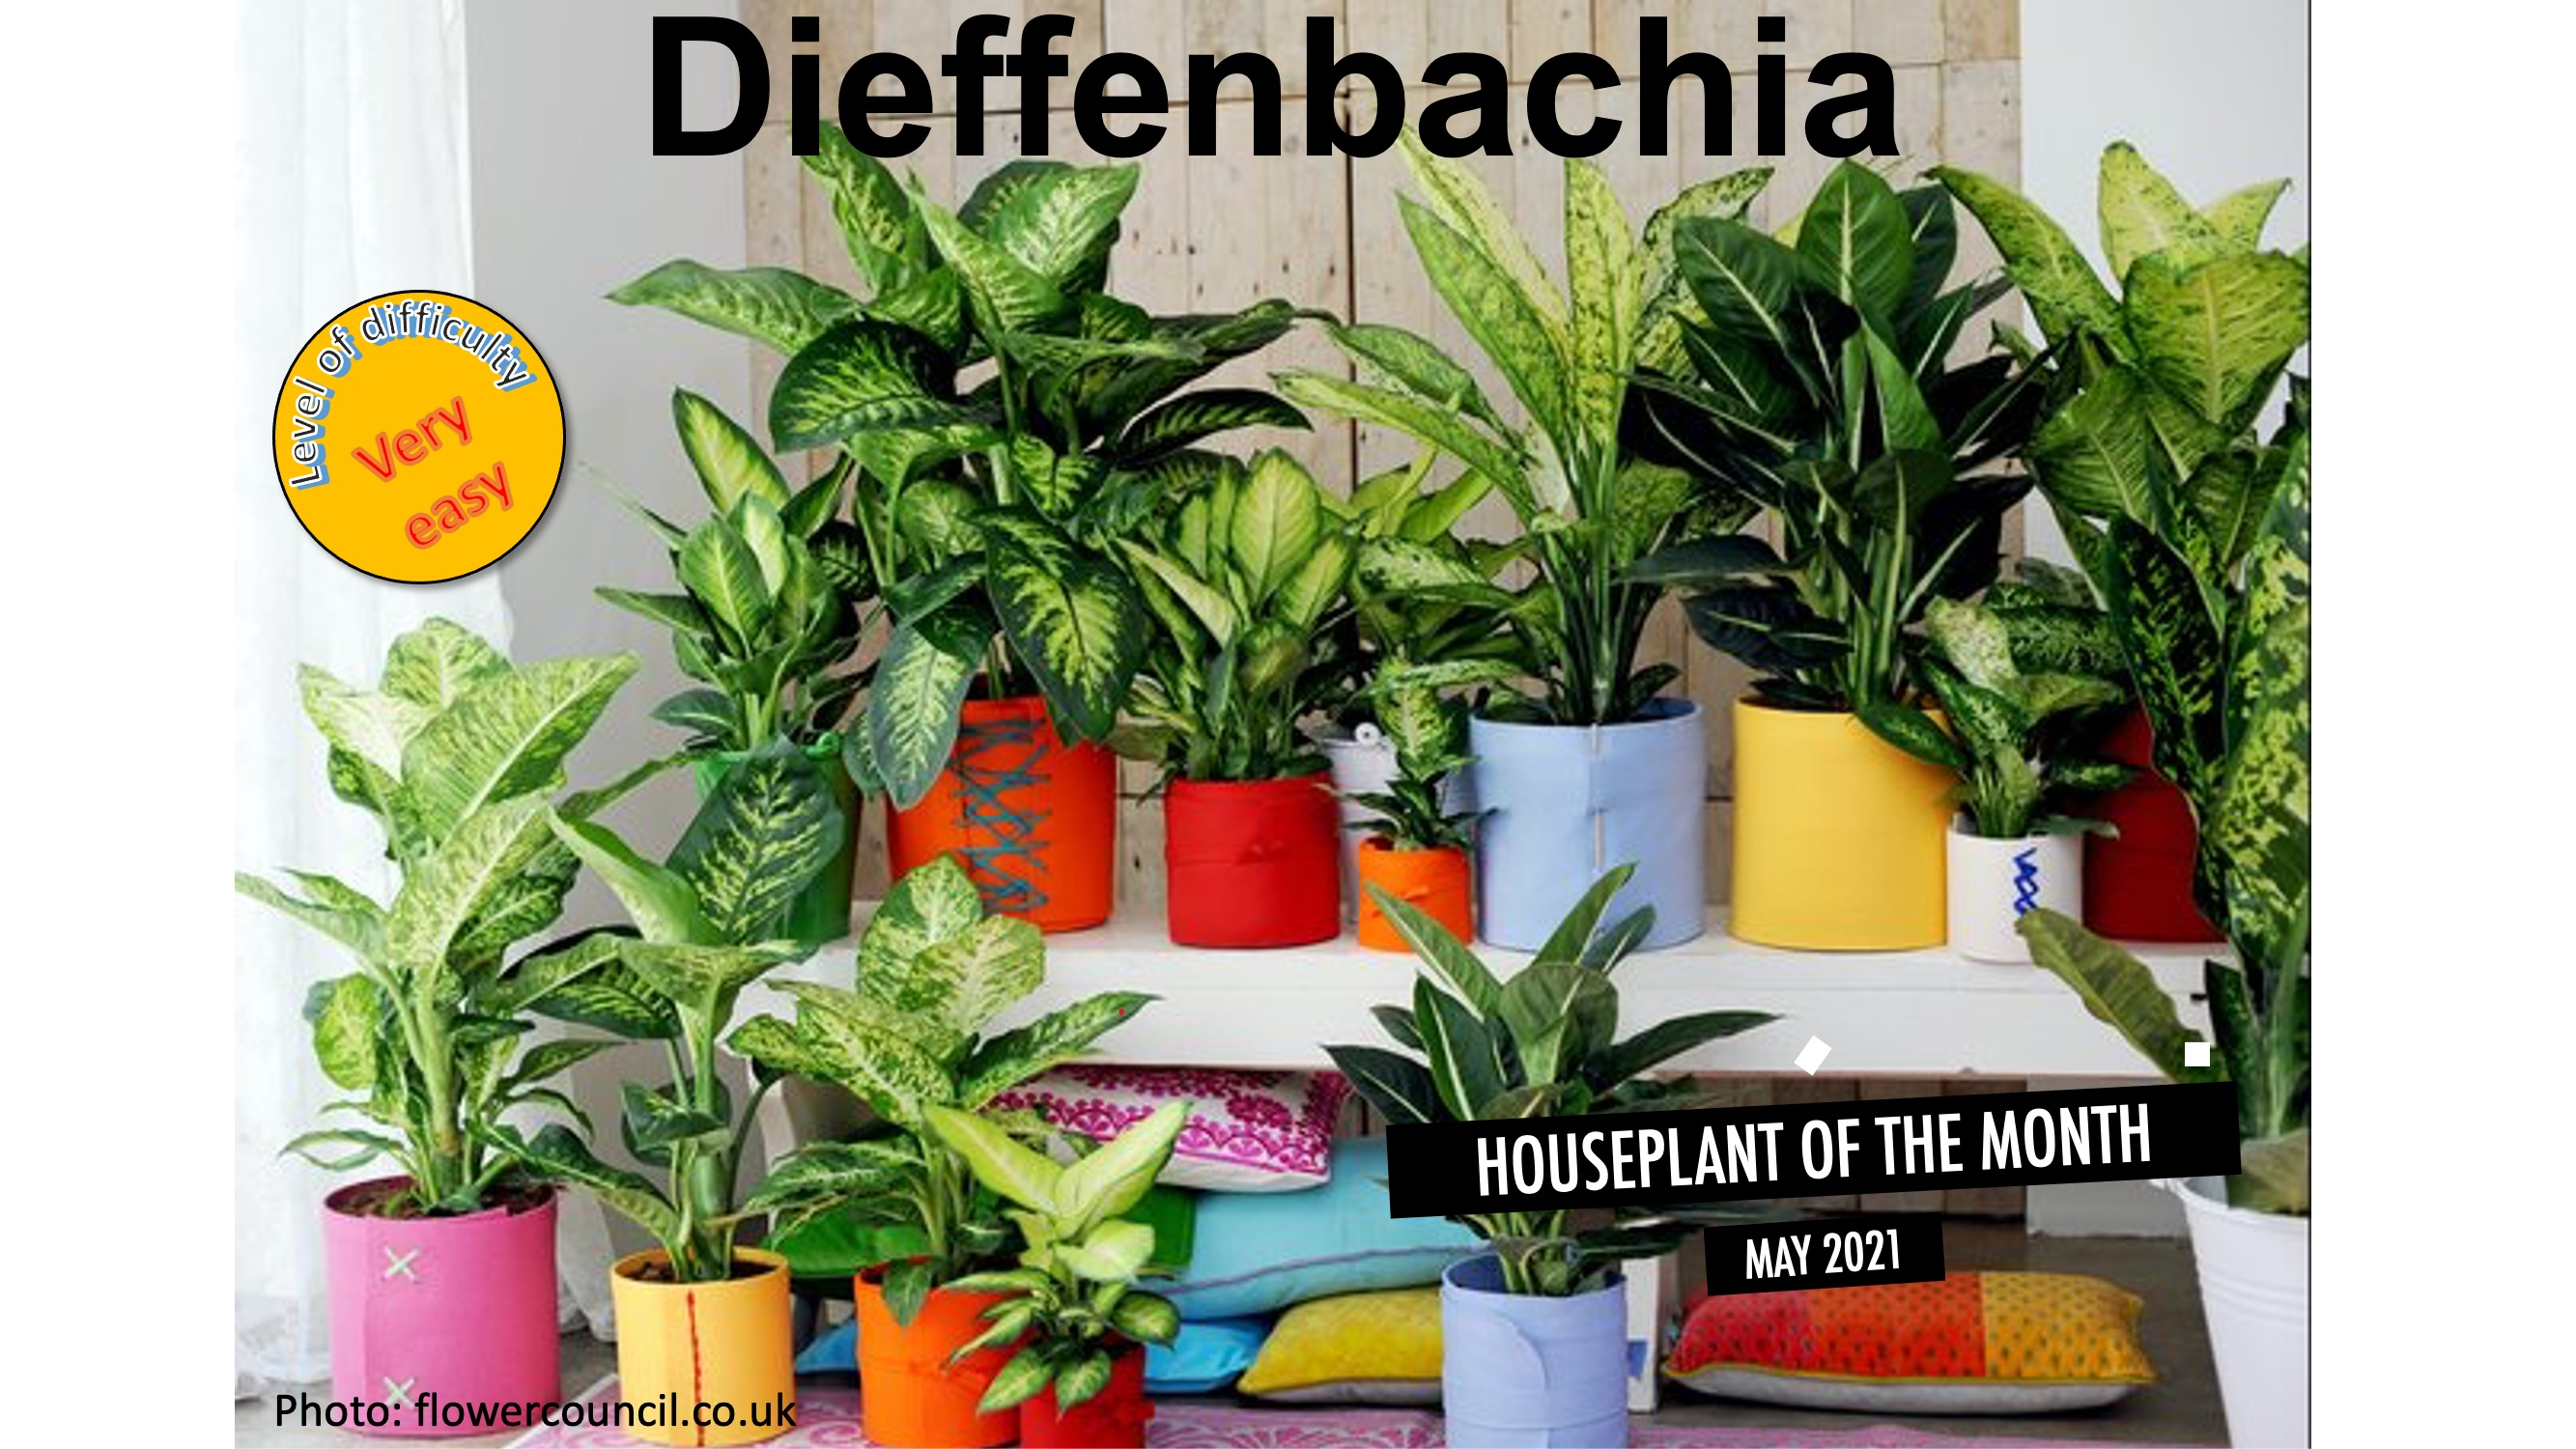 Many different dieffenbachias on two levels.